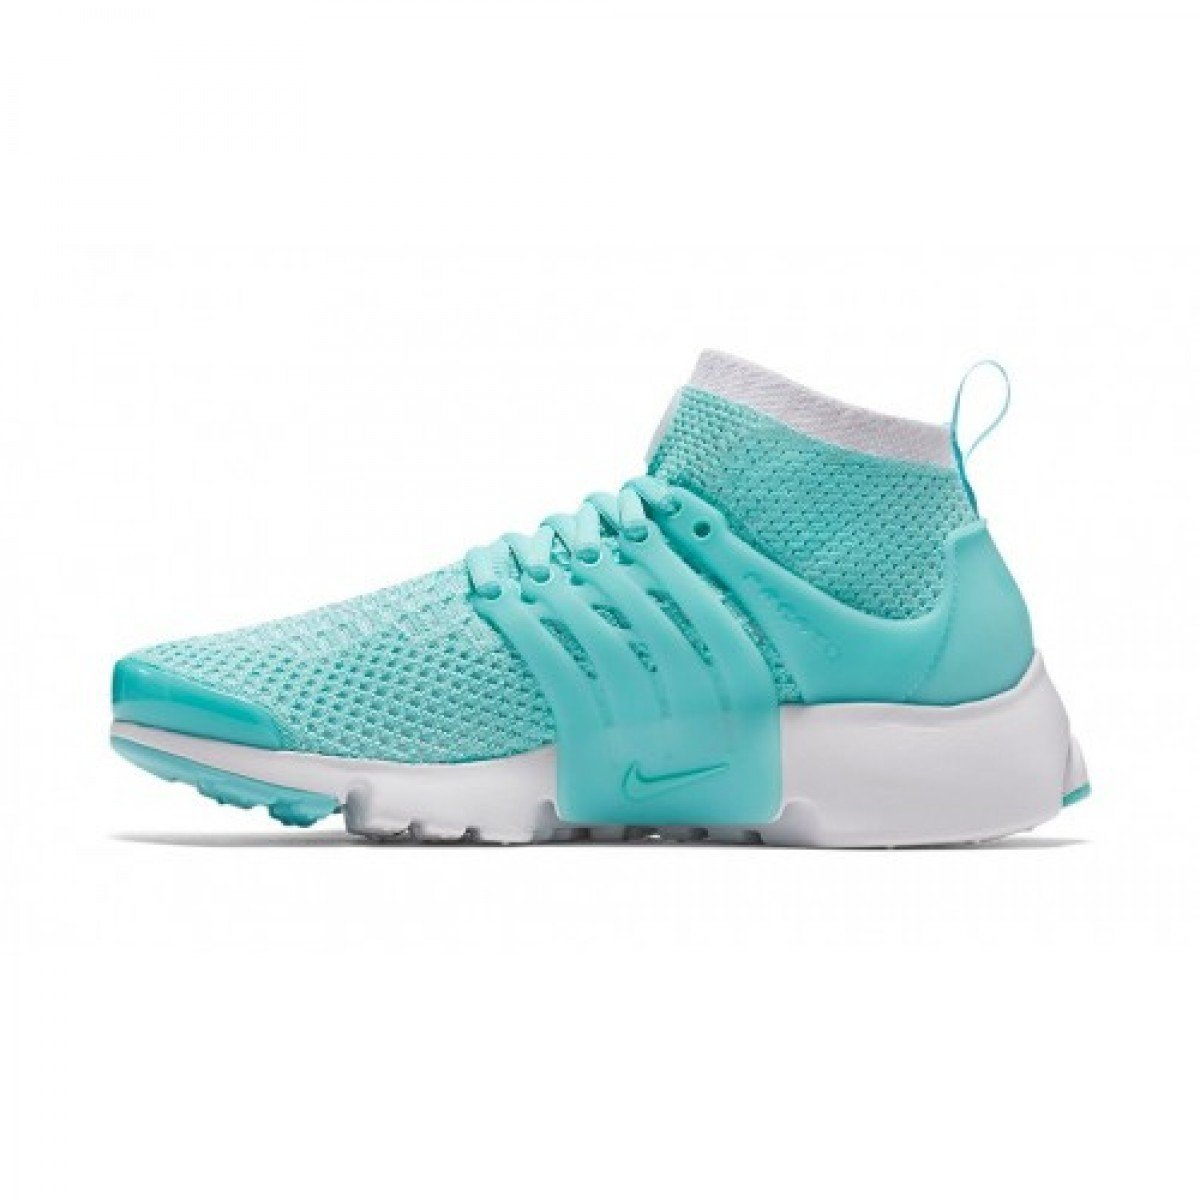 newest coupon code how to buy Buy Nike Men's Air Presto Ultra Flyknit Sea Green Mesh Sports ...